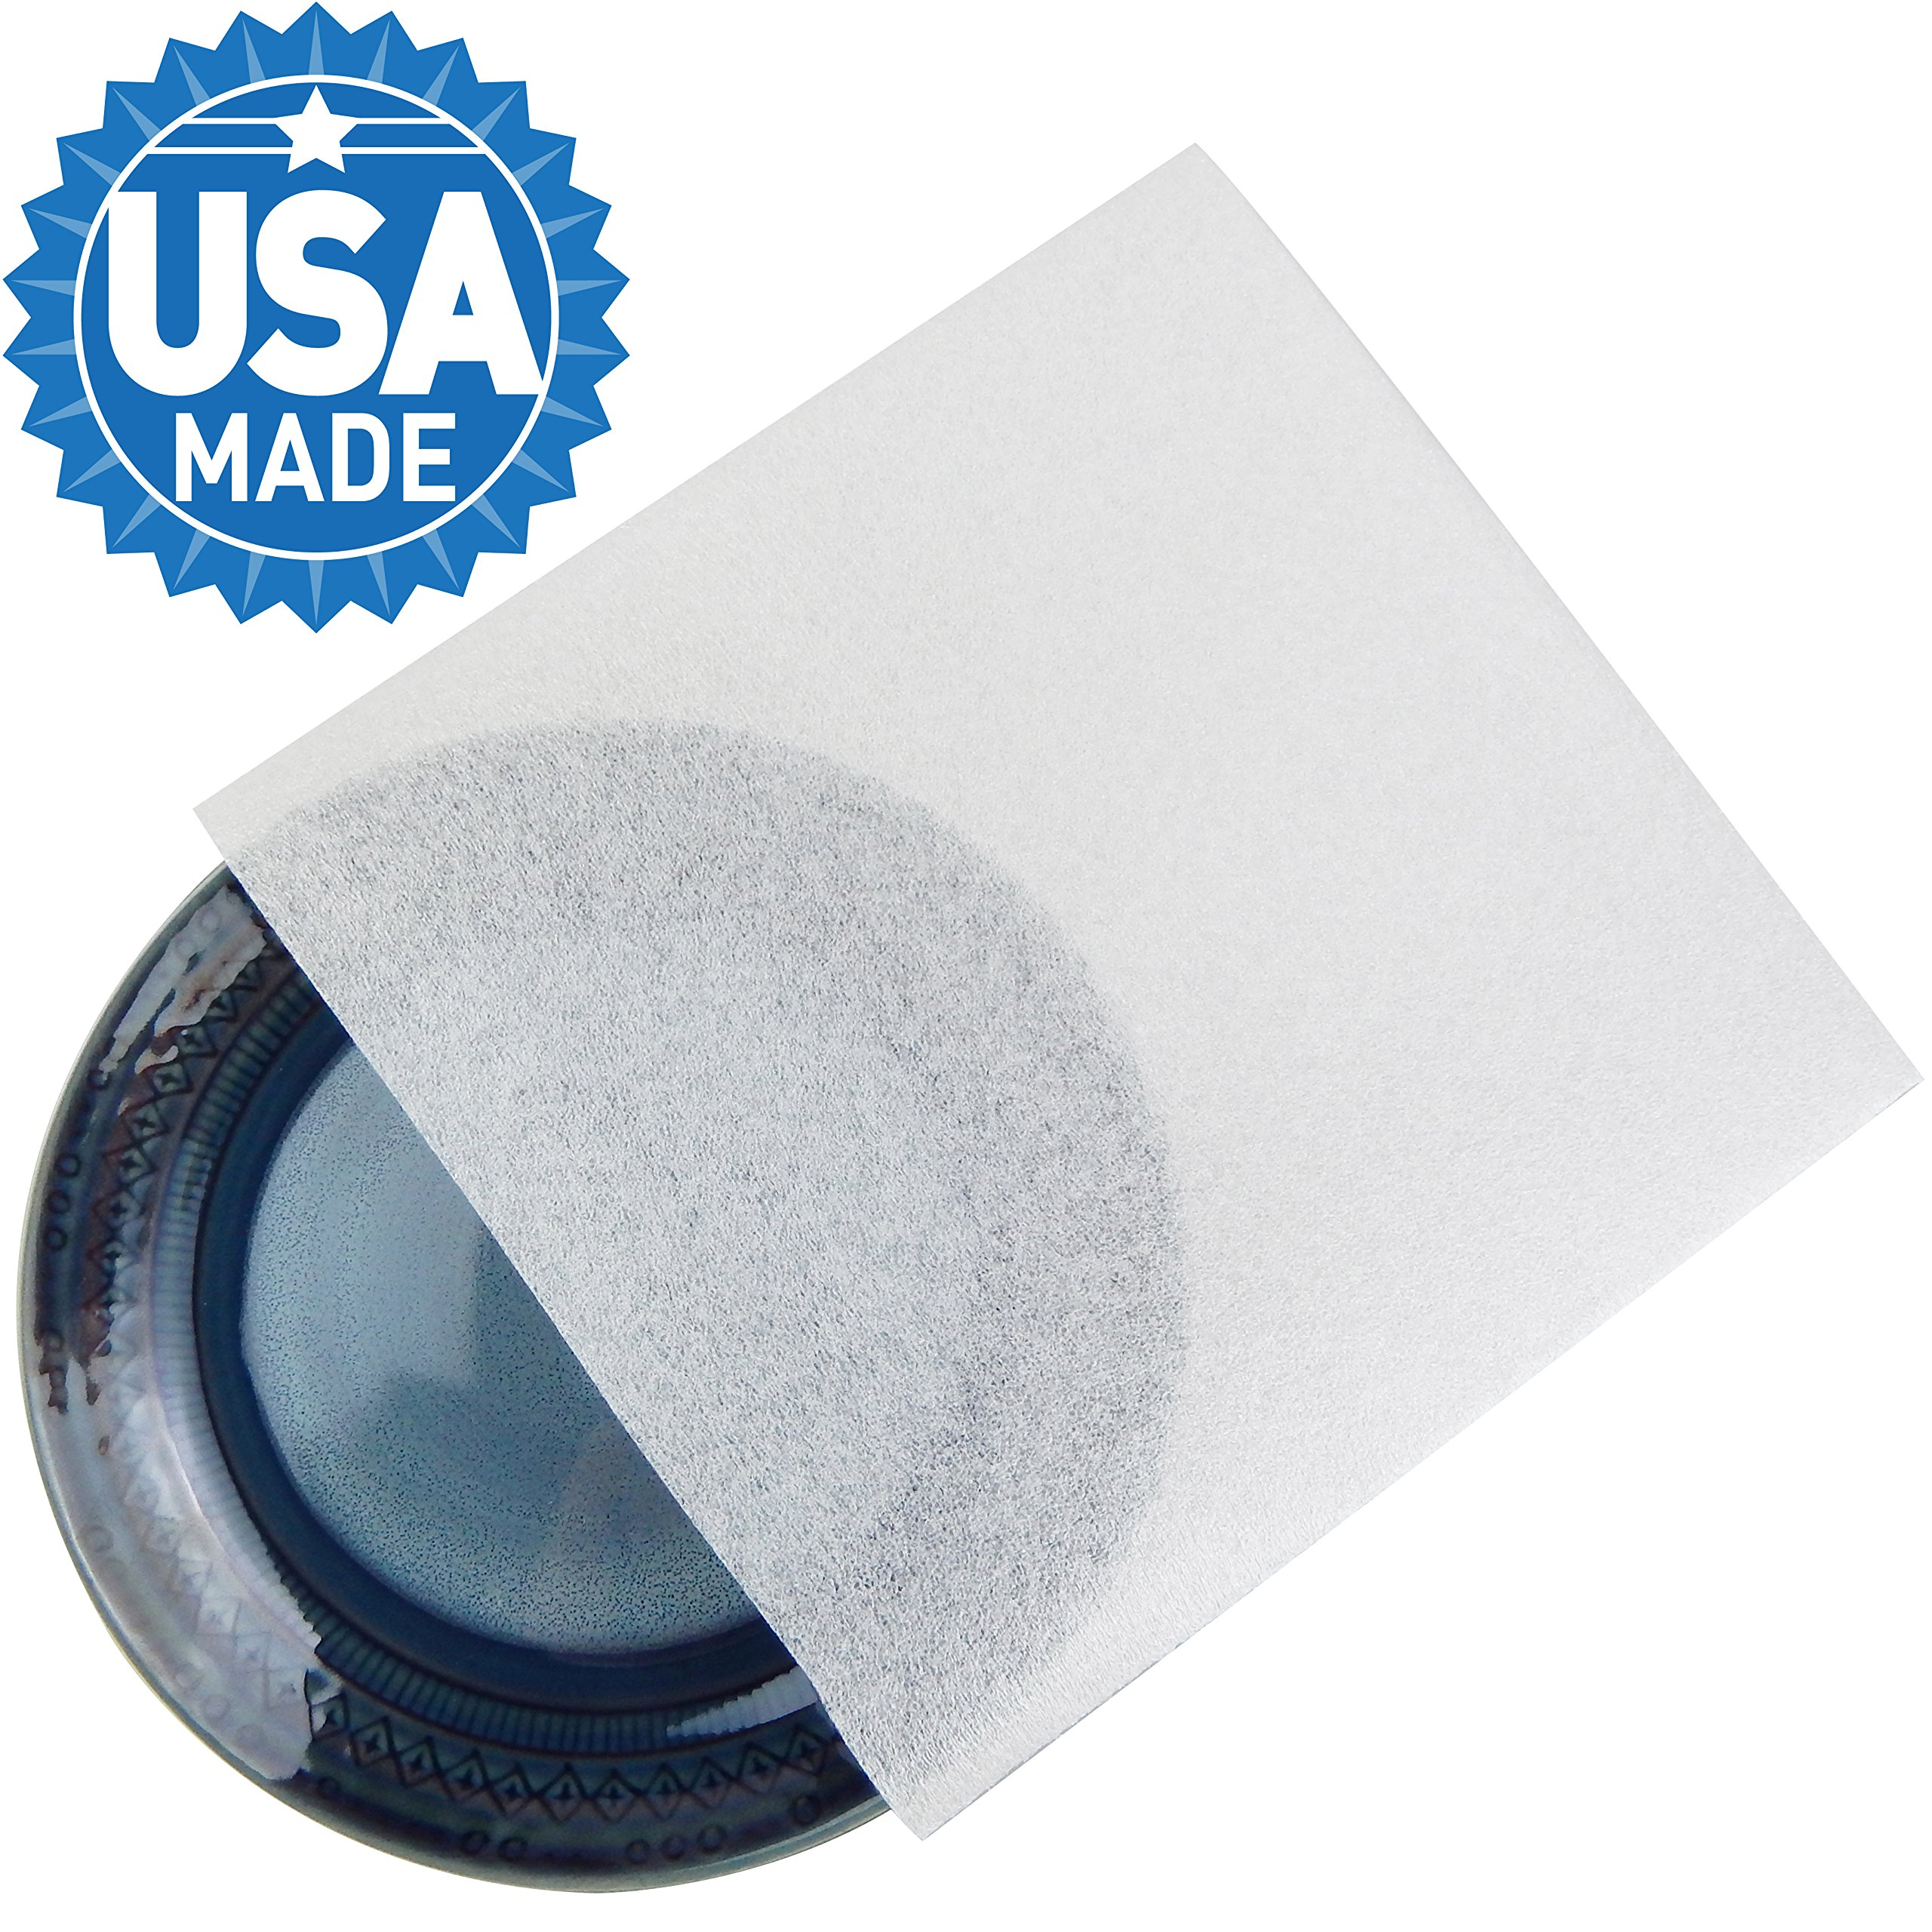 Foam Pouches, DAT 9.5'' x 9.5'' Foam Wrap Cushioning for Moving and Storage, Packing Supplies (60 Pack - 9.5'' x 9.5'')